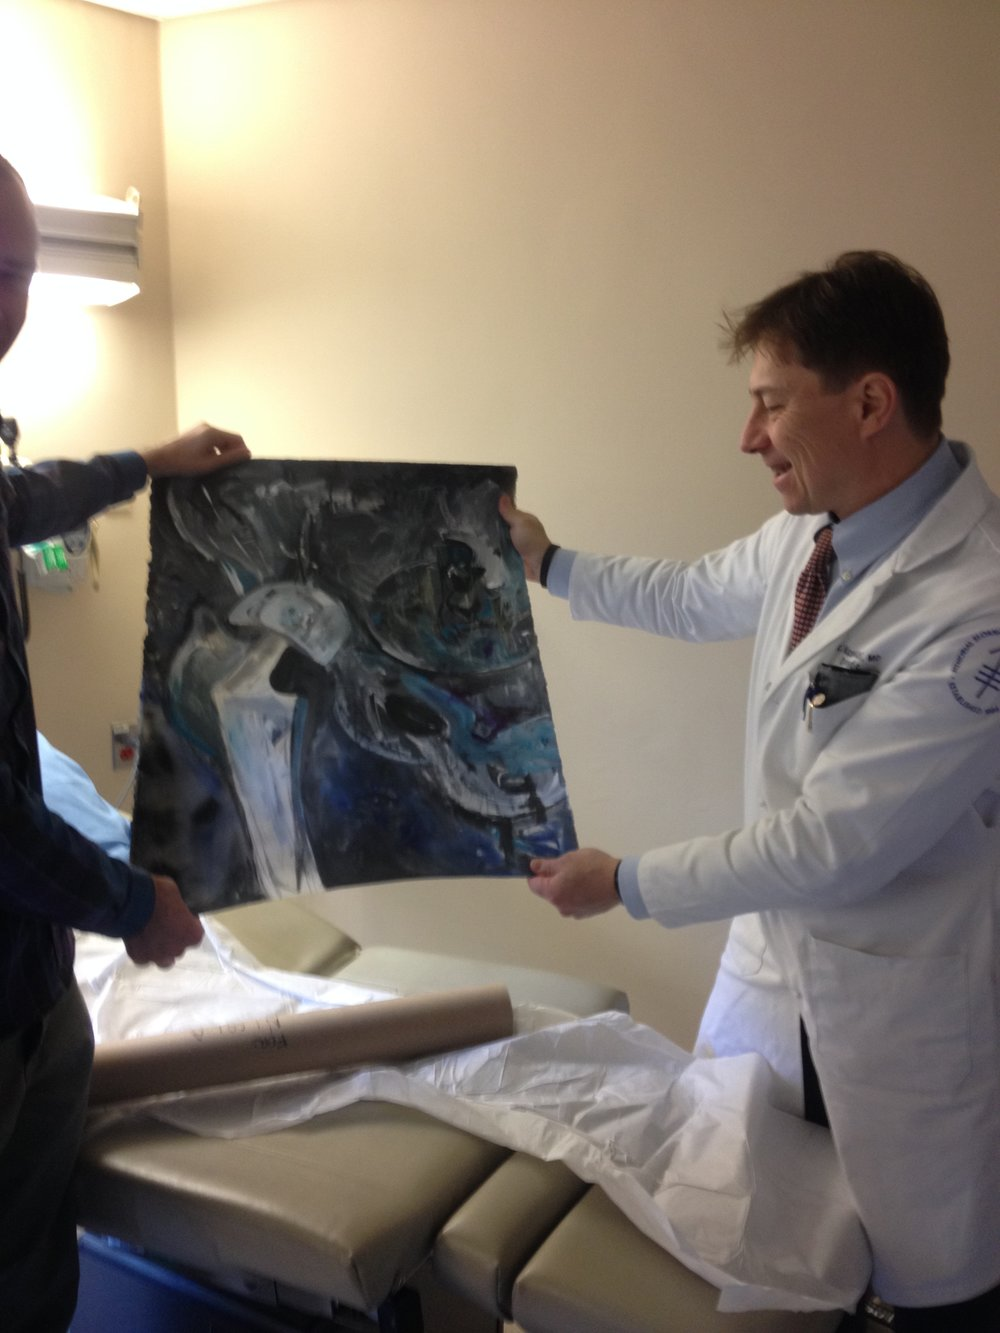 """RoboHip""  Permanent Collection of Dr. Nicola Fabbri, MSKCC Orthopaedic surgeon"